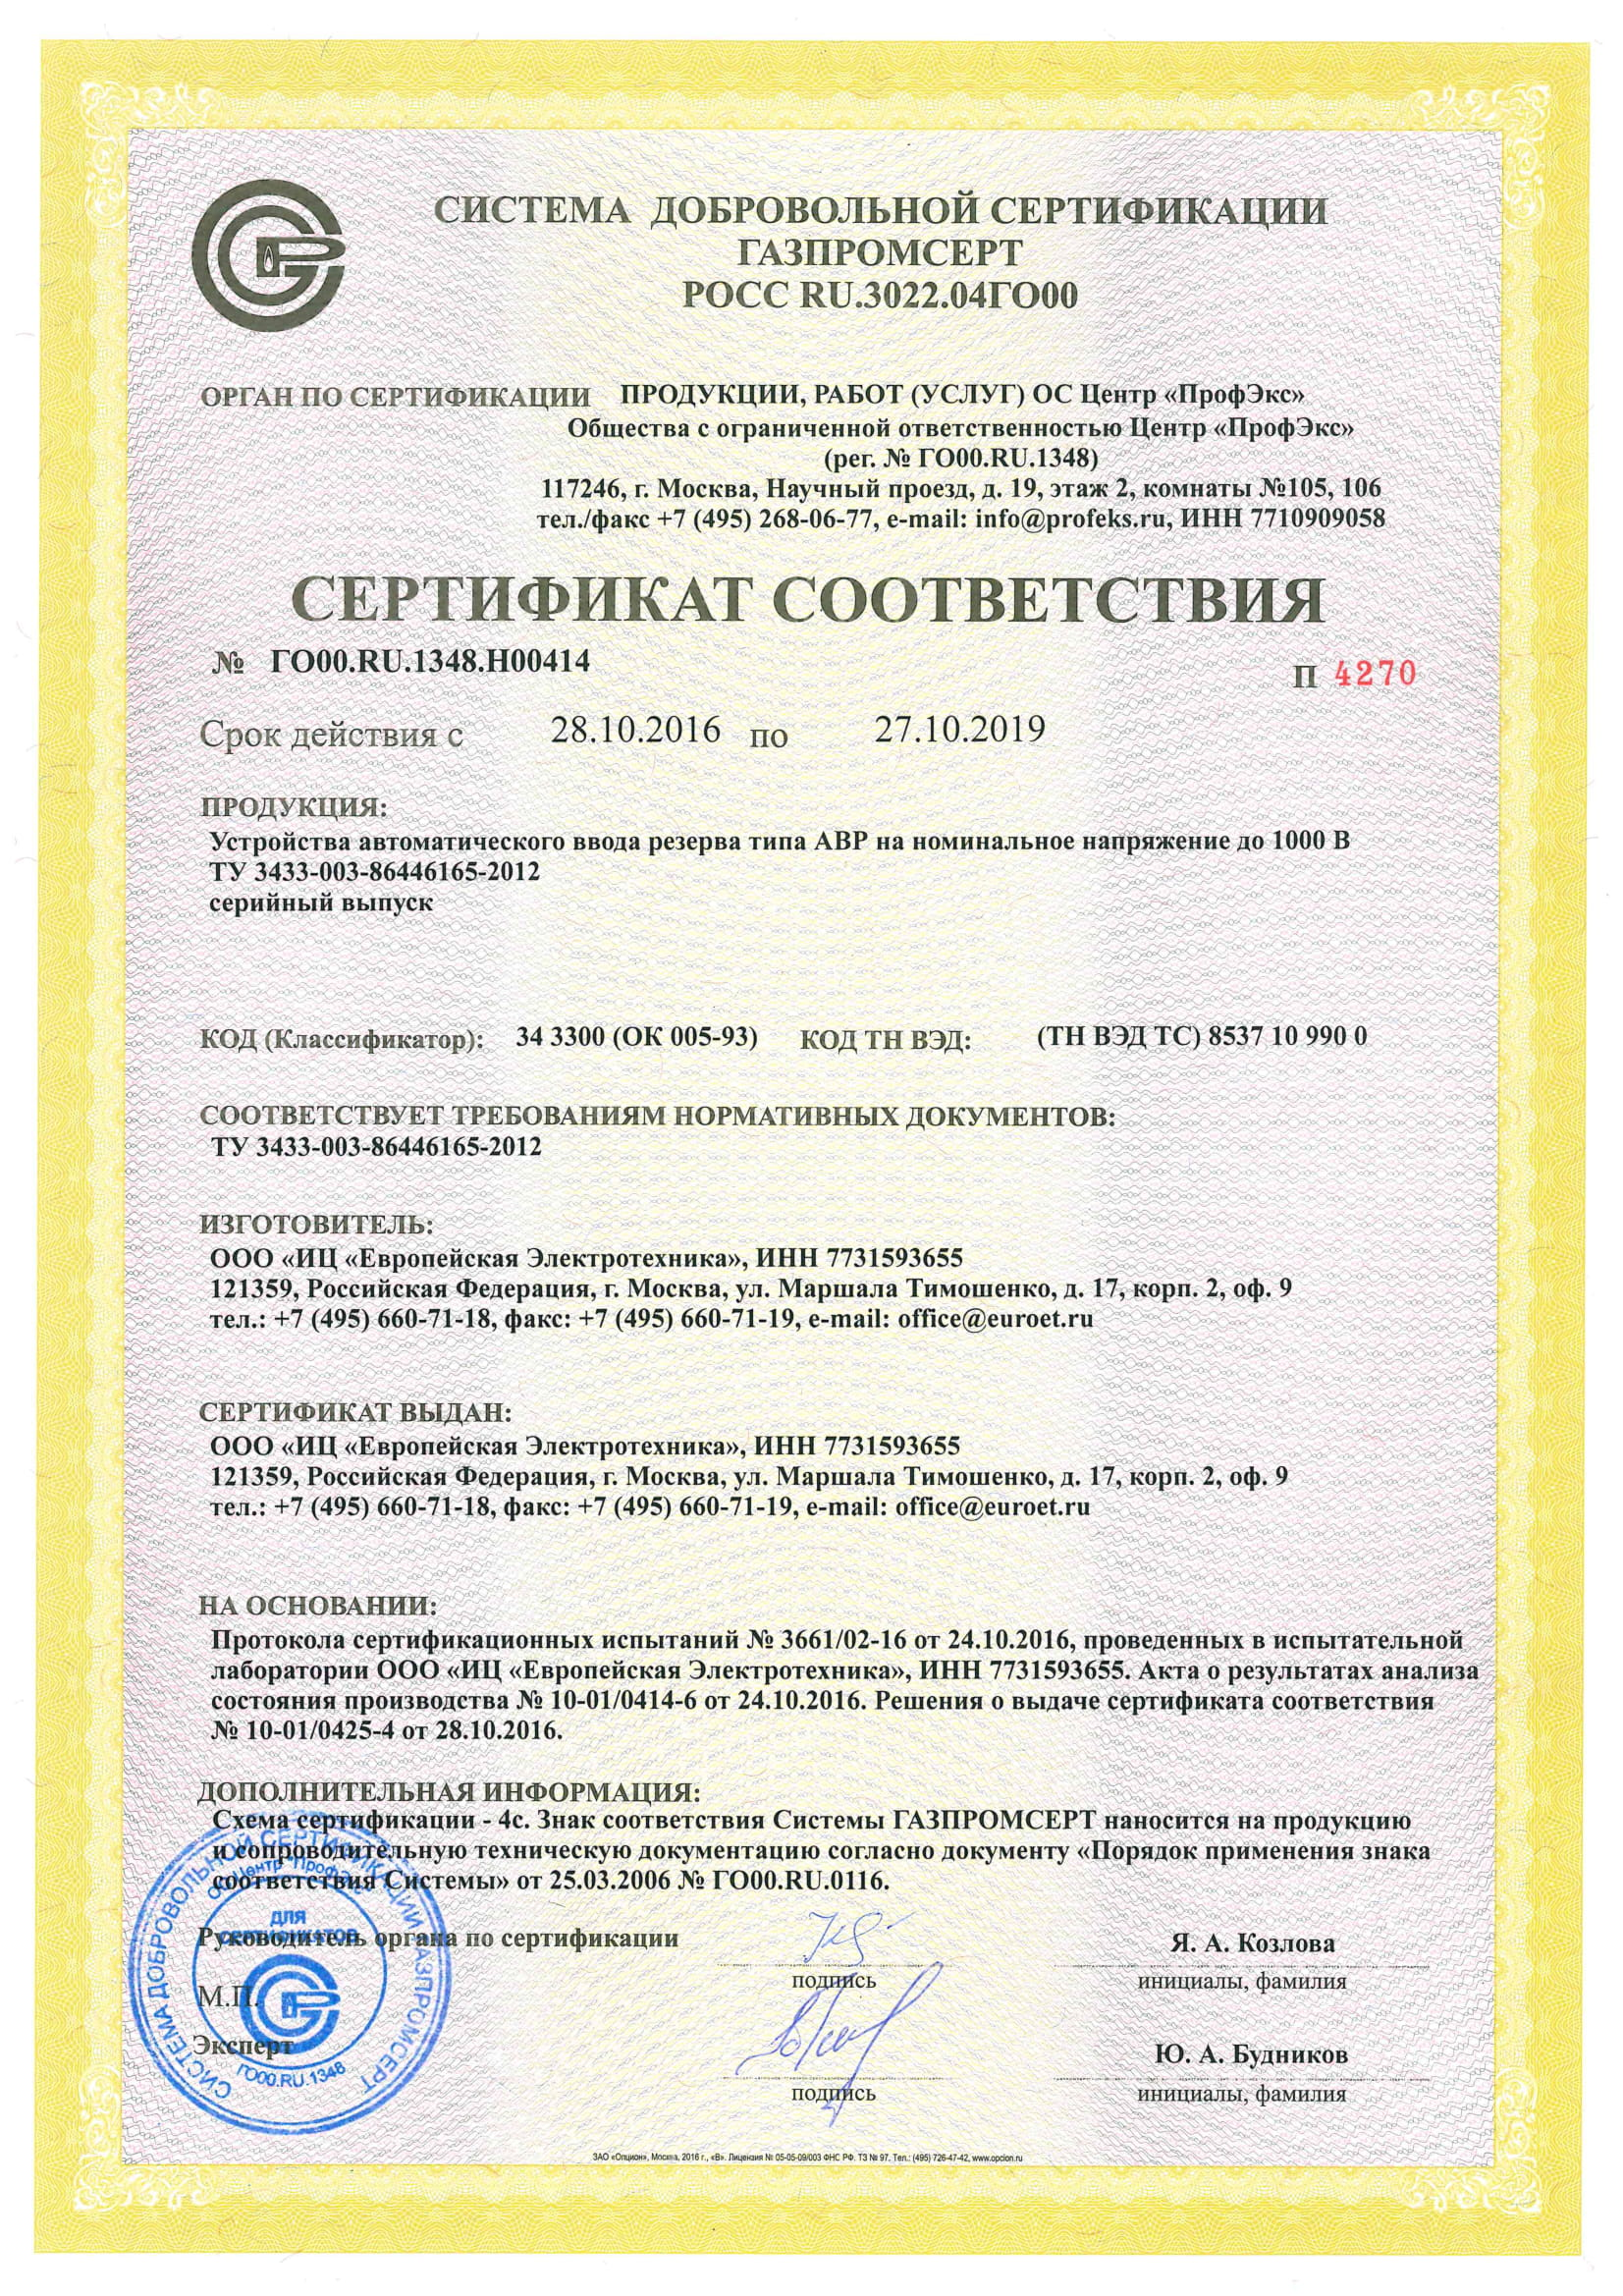 Gazpromsert Certificate for Automatic Standby Activation